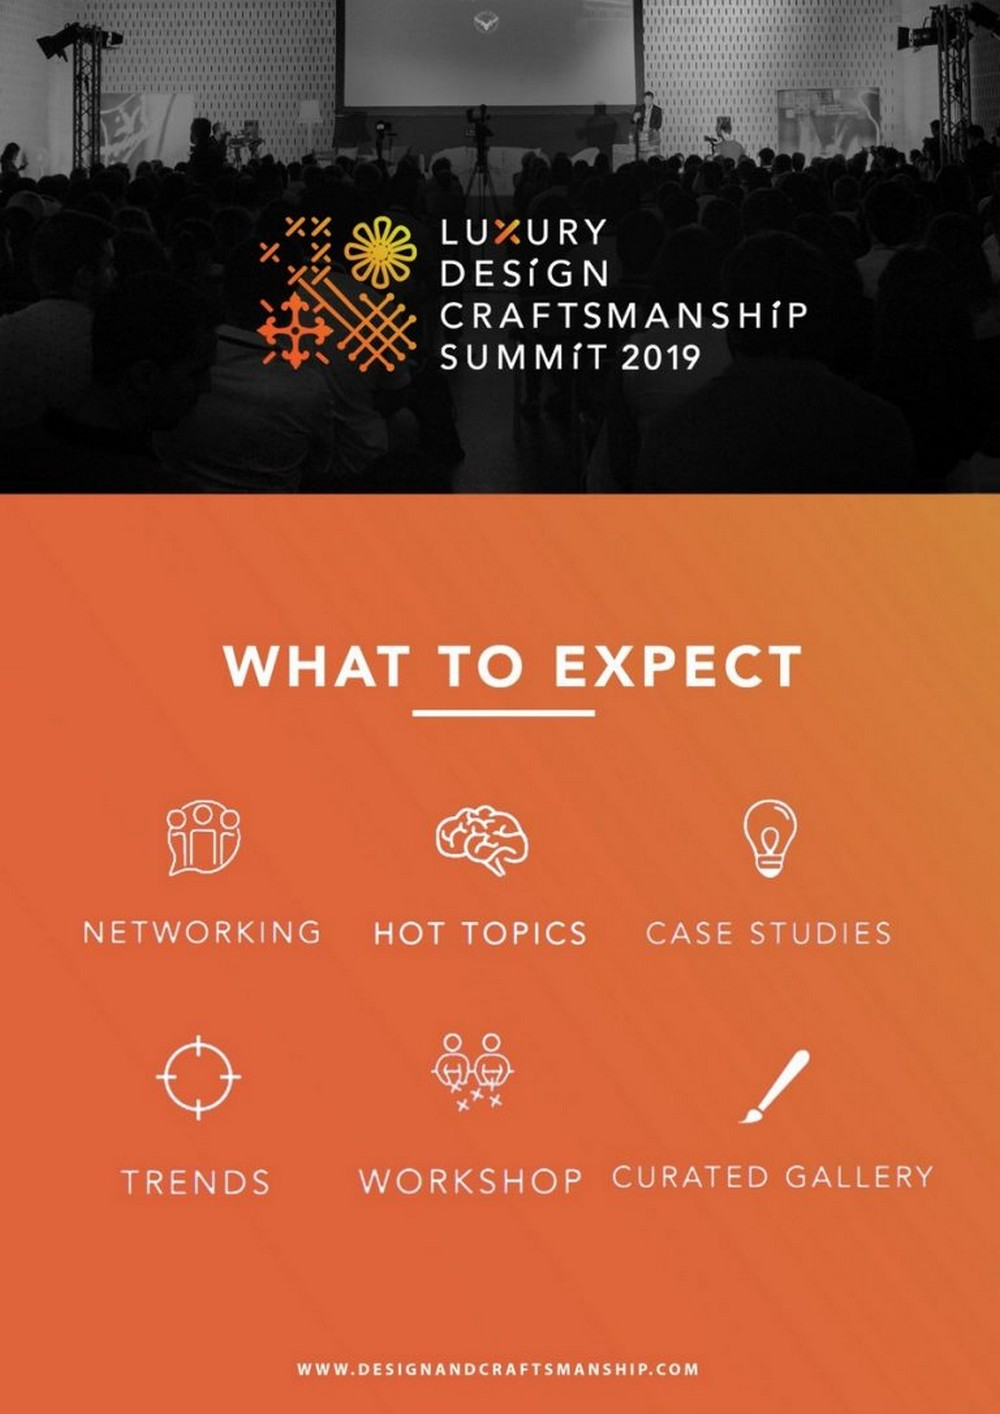 craftsmanship summit Know more about the Luxury Design & Craftsmanship Summit 2019 LDC3 768x1086